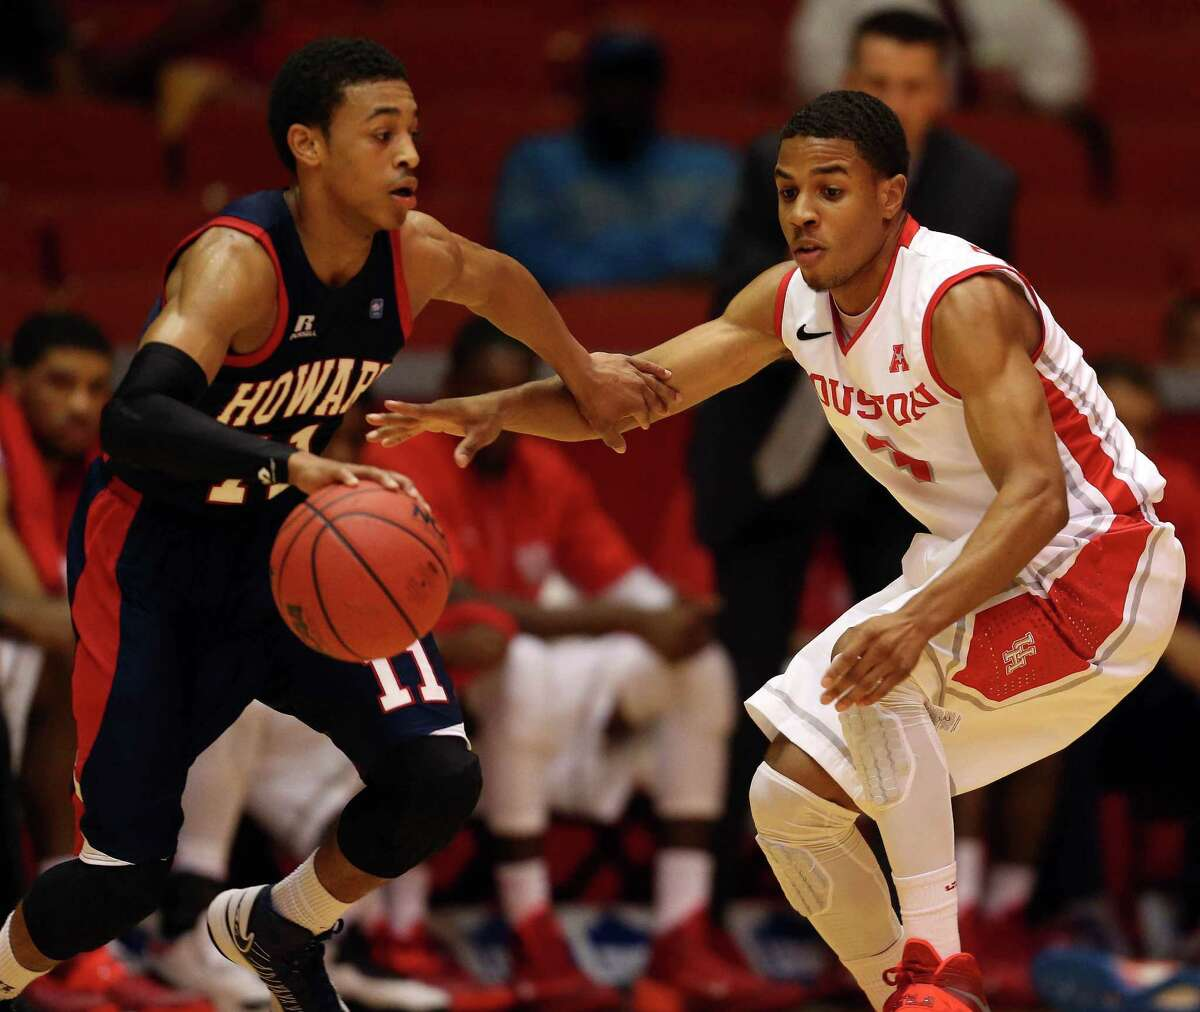 Houston's Jaaron Simmons, right, defends Howard's James Daniel during the first half of an NCAA college basketball game, Thursday, November 21, 2013, at Hofheinz Pavilion in Houston.